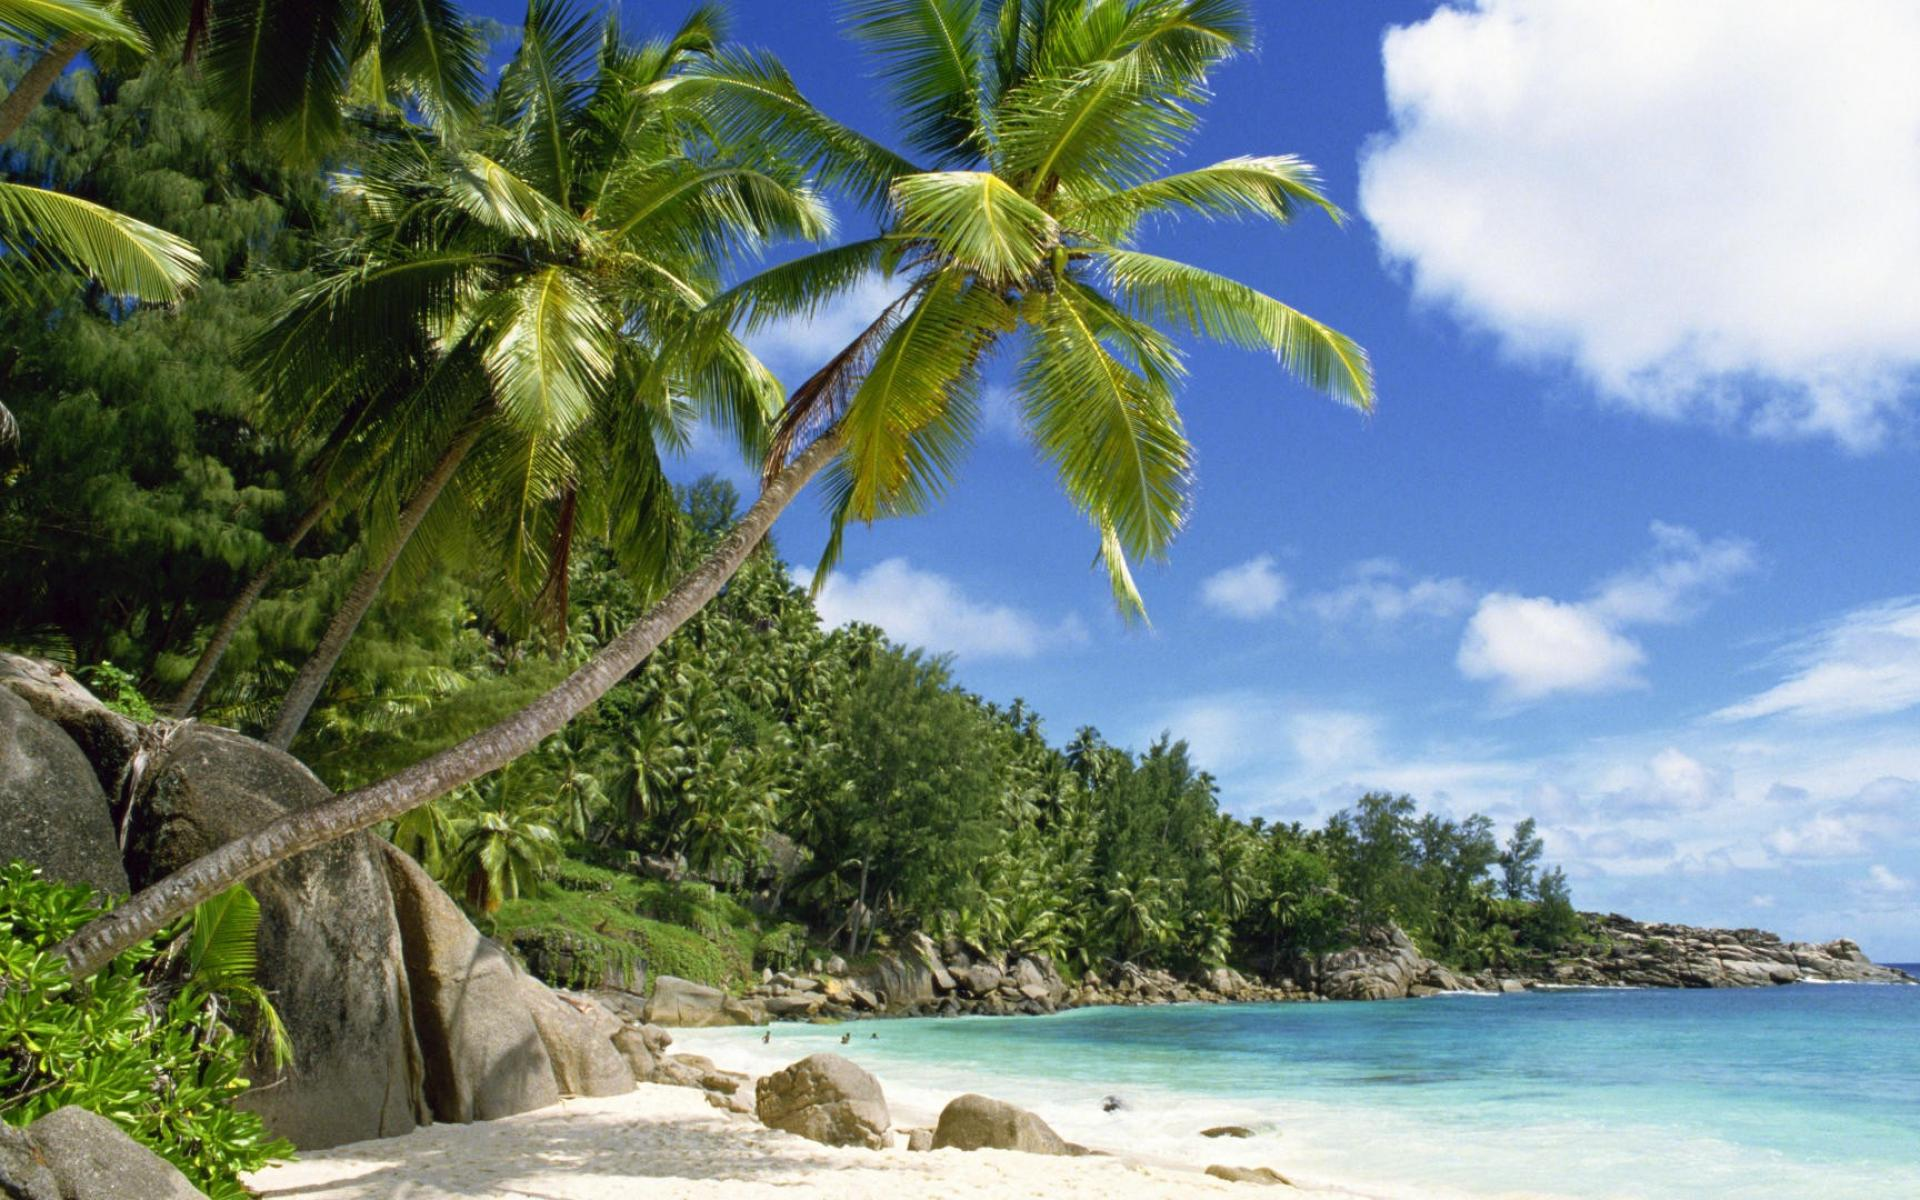 Beaches with Coconut Trees